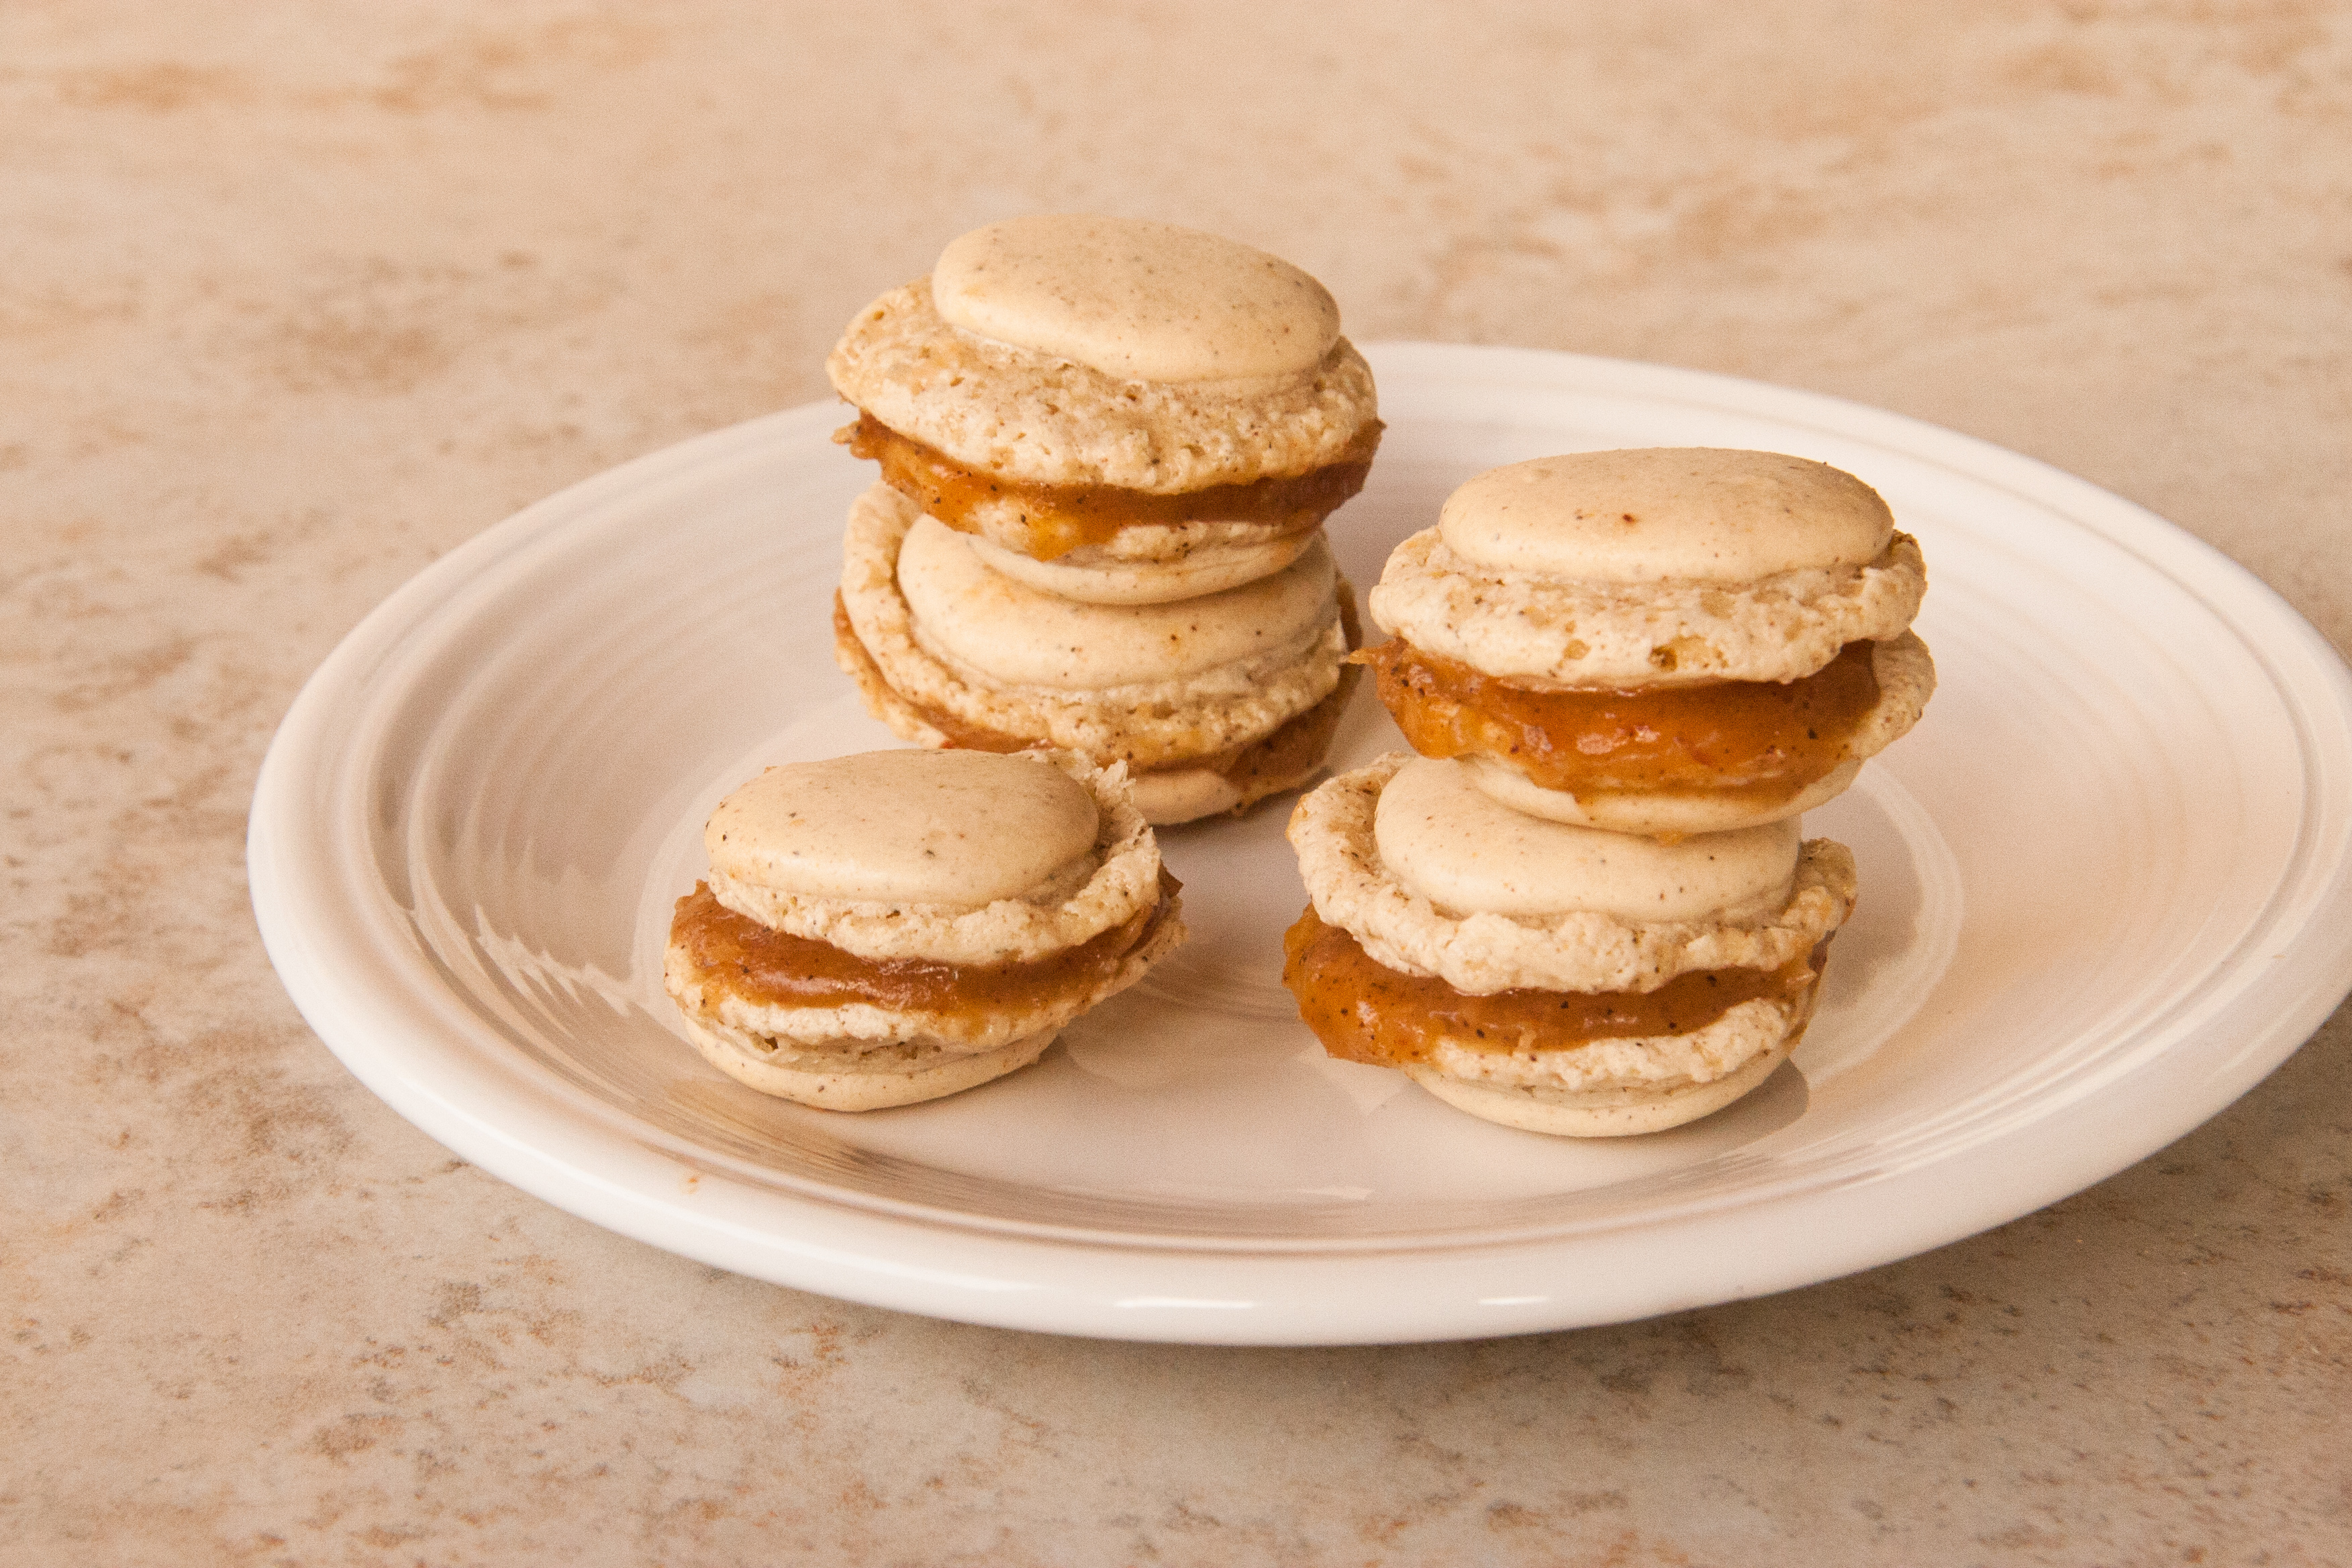 Foraged Macarons (with Spicebush Berries & Crabapple Filling)